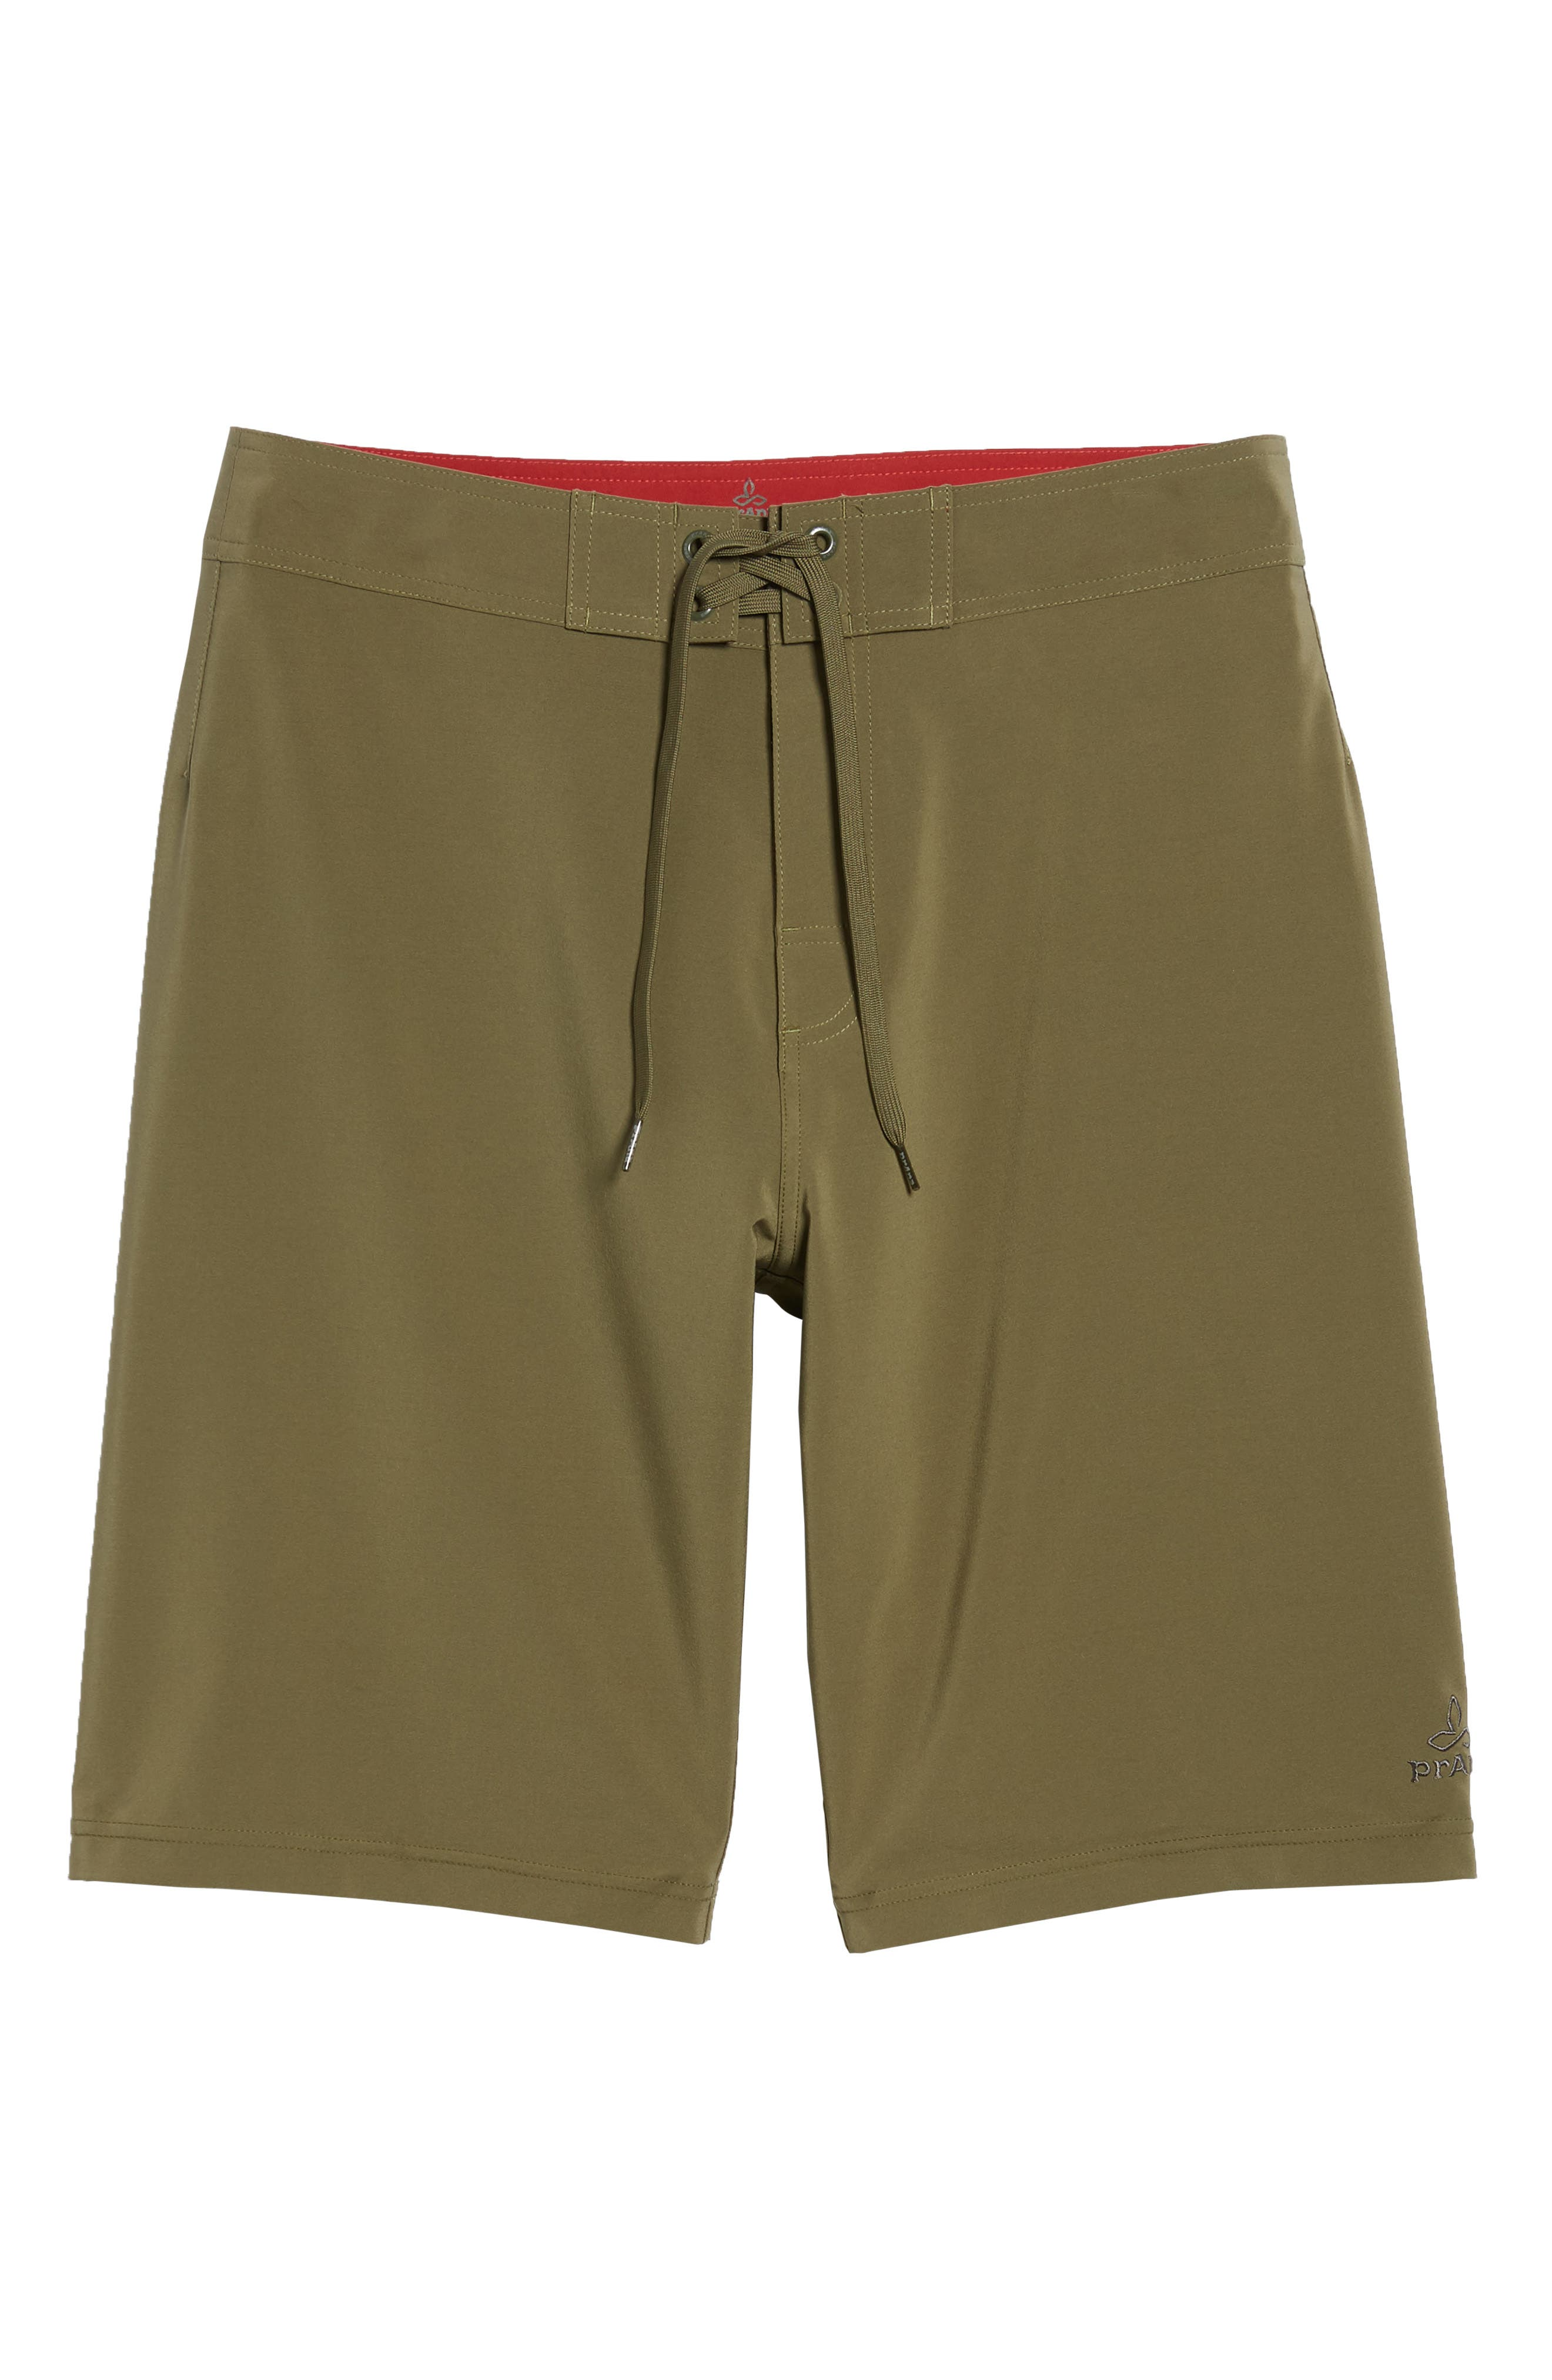 'Sediment' Stretch Board Shorts,                         Main,                         color, Cargo Green